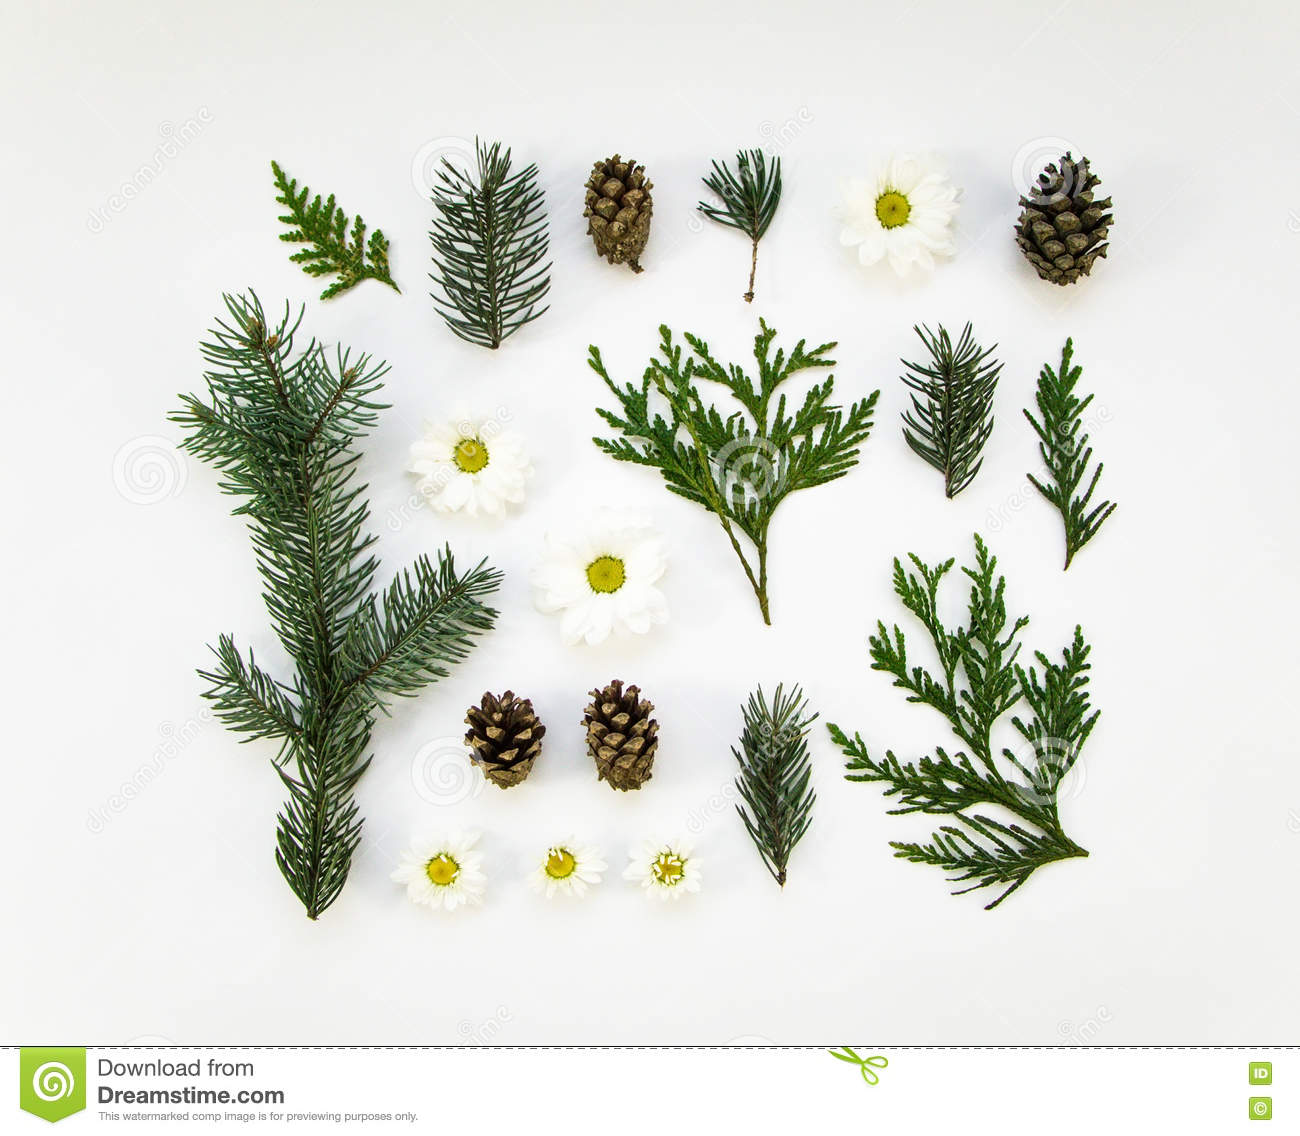 Creative natural layout of winter plants parts on white background creative natural layout of winter plants parts on white background flat lay top view izmirmasajfo